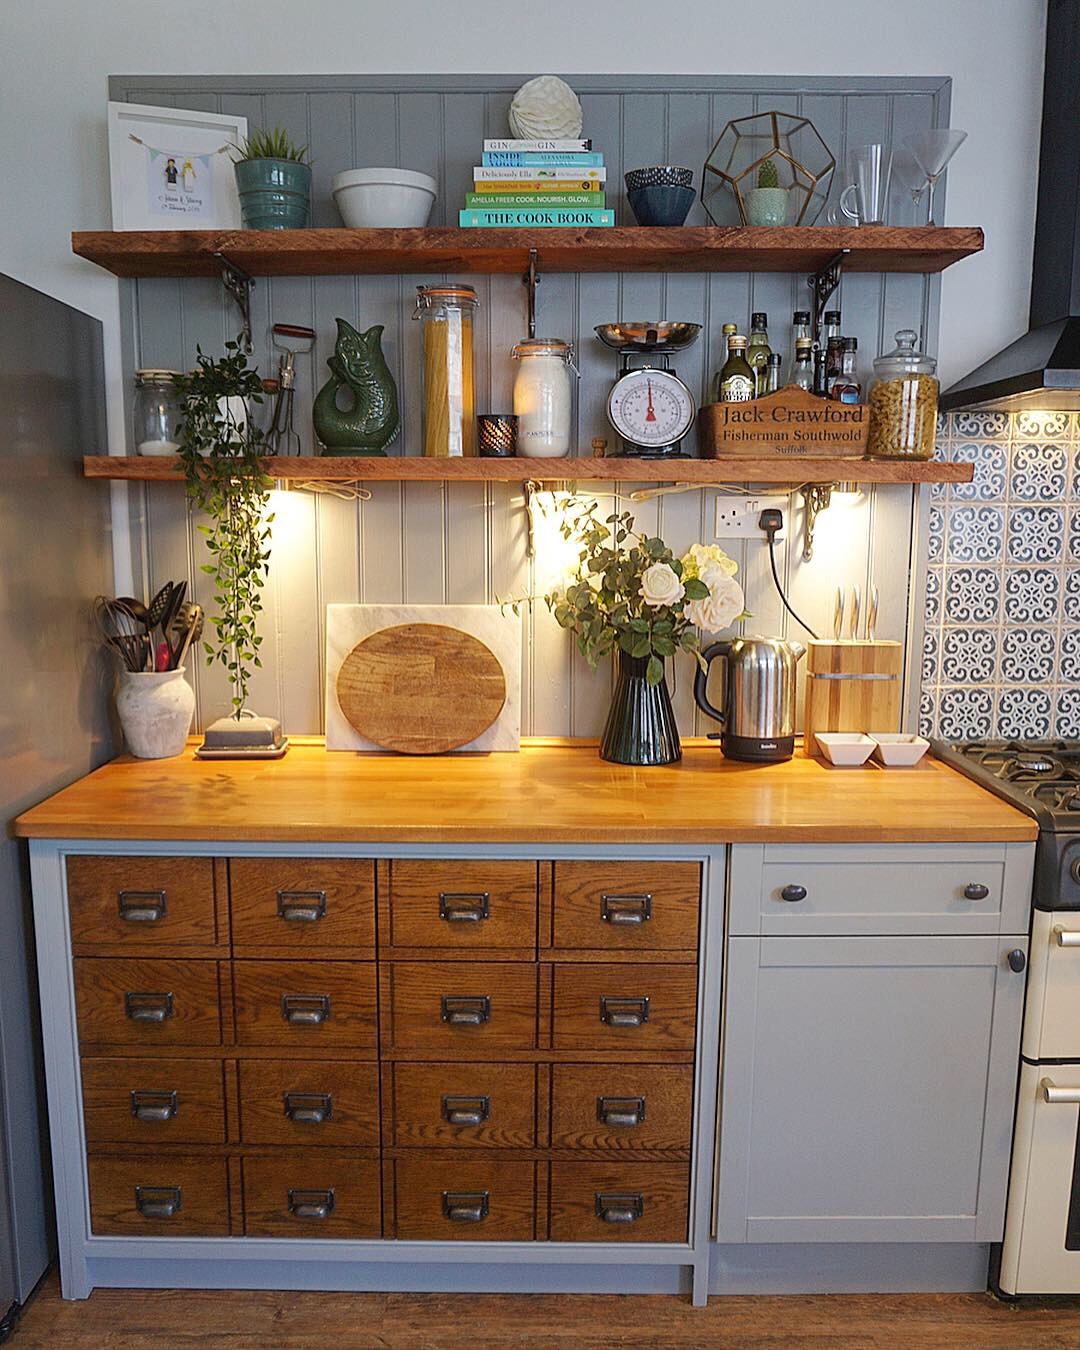 Apothecary style kitchen drawers